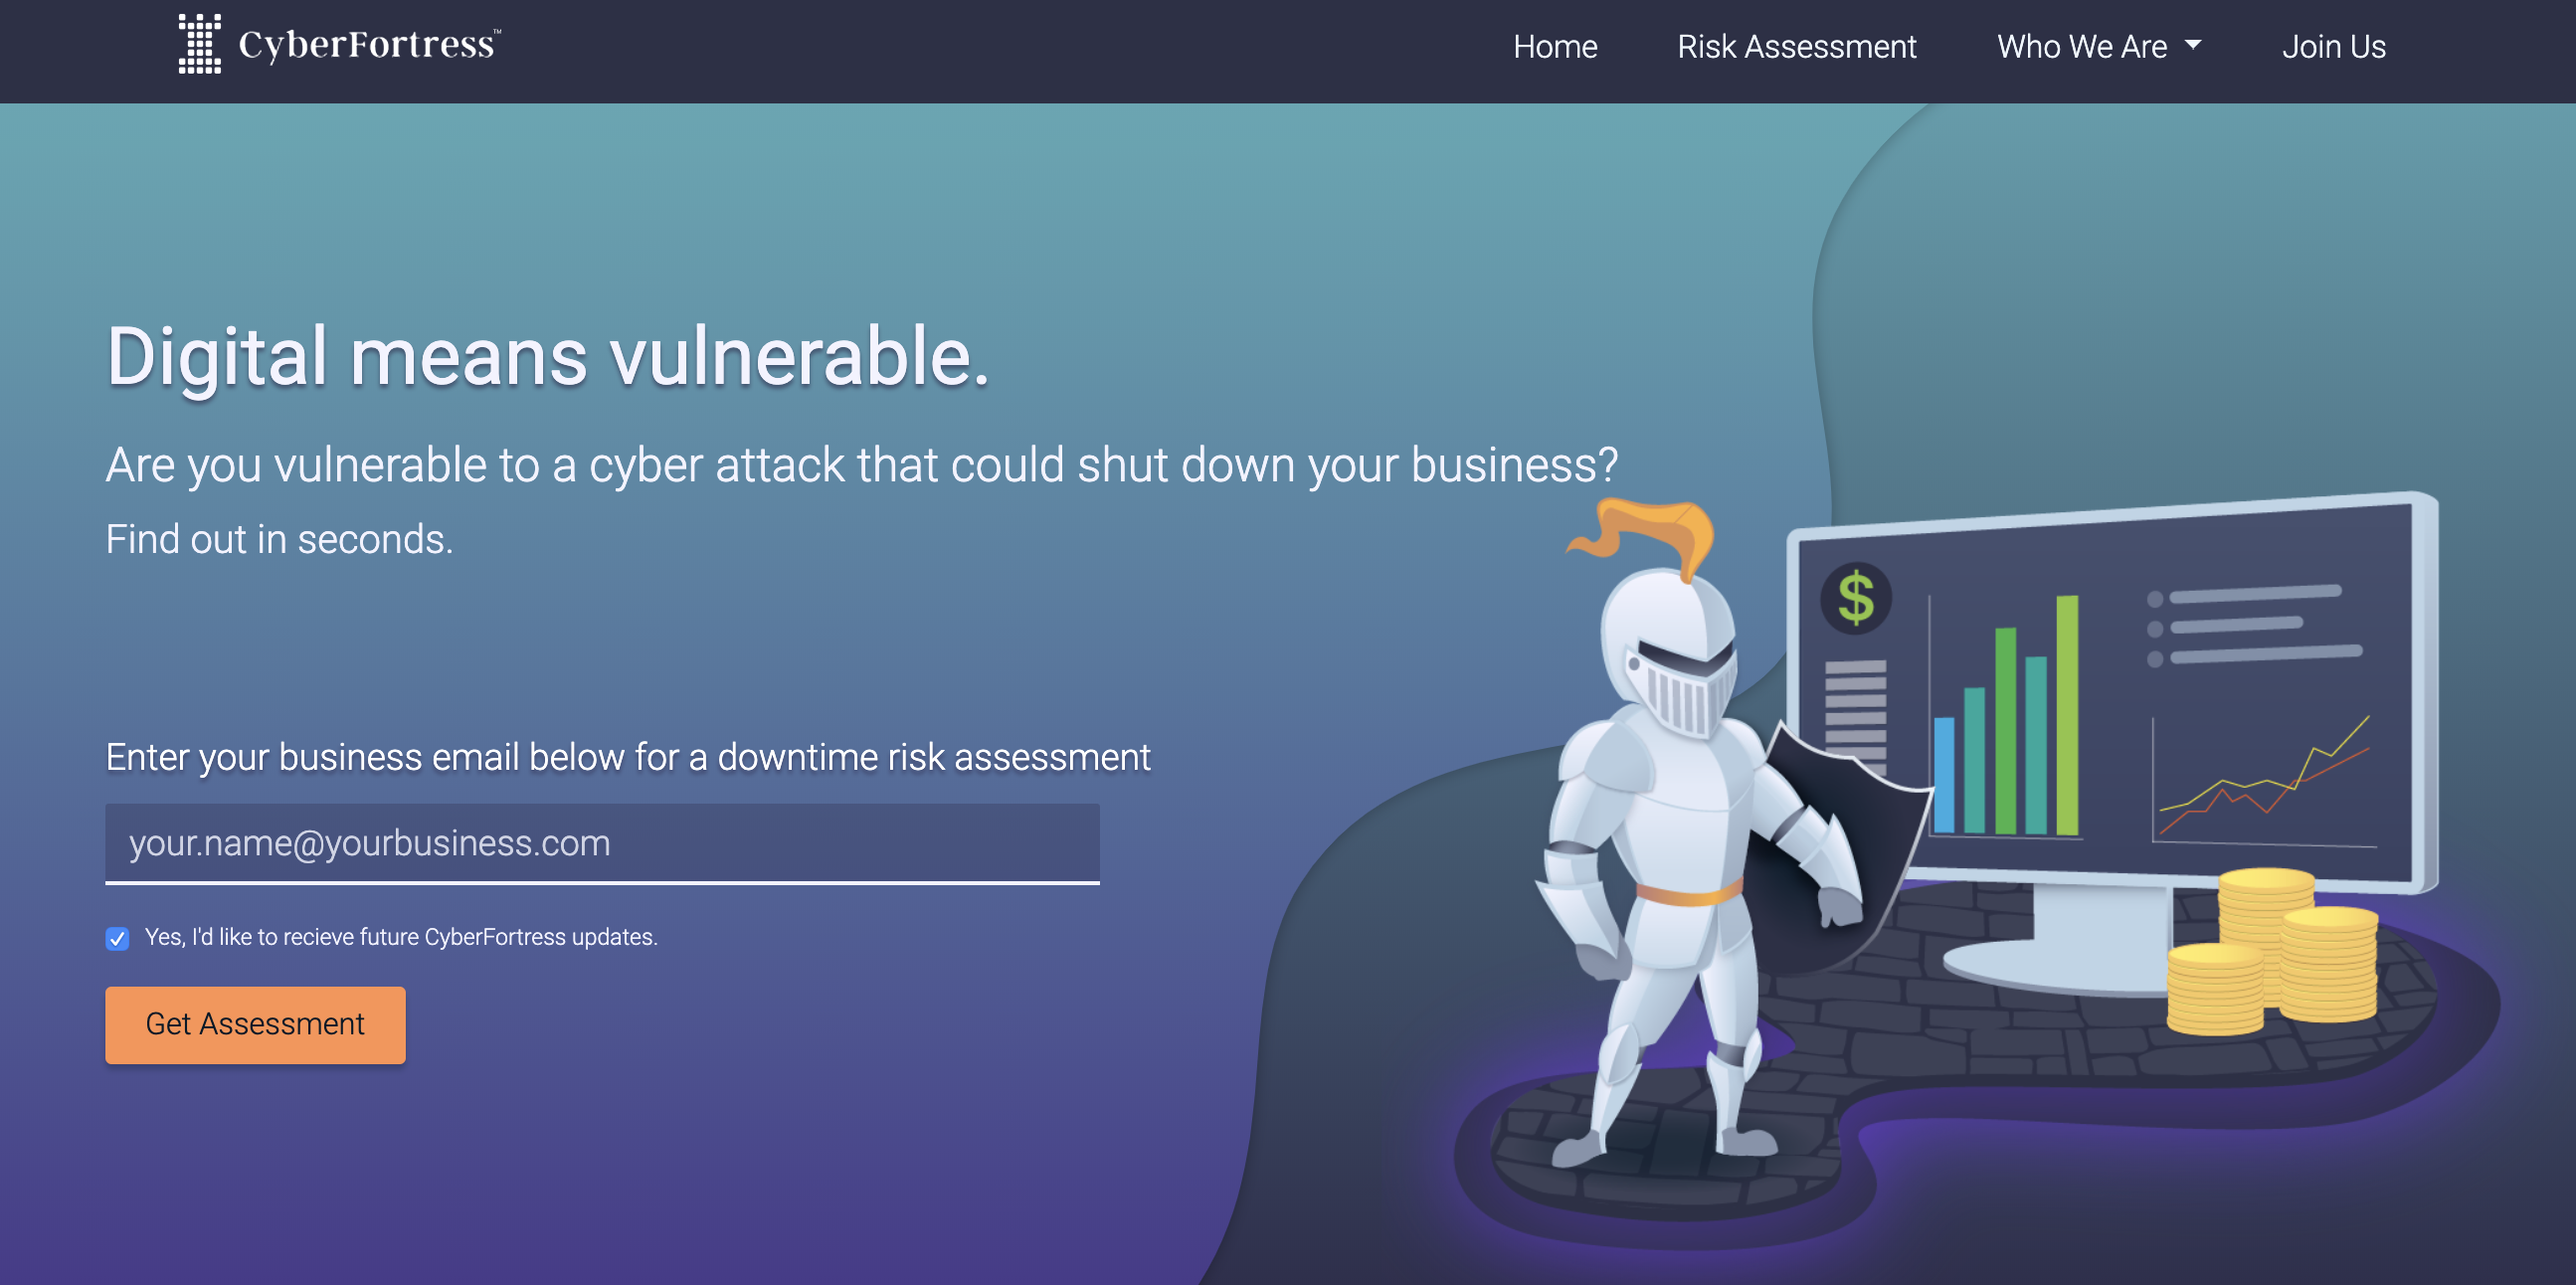 CyberFortress launched its cyber risk assessment as a free service. Courtesy image.